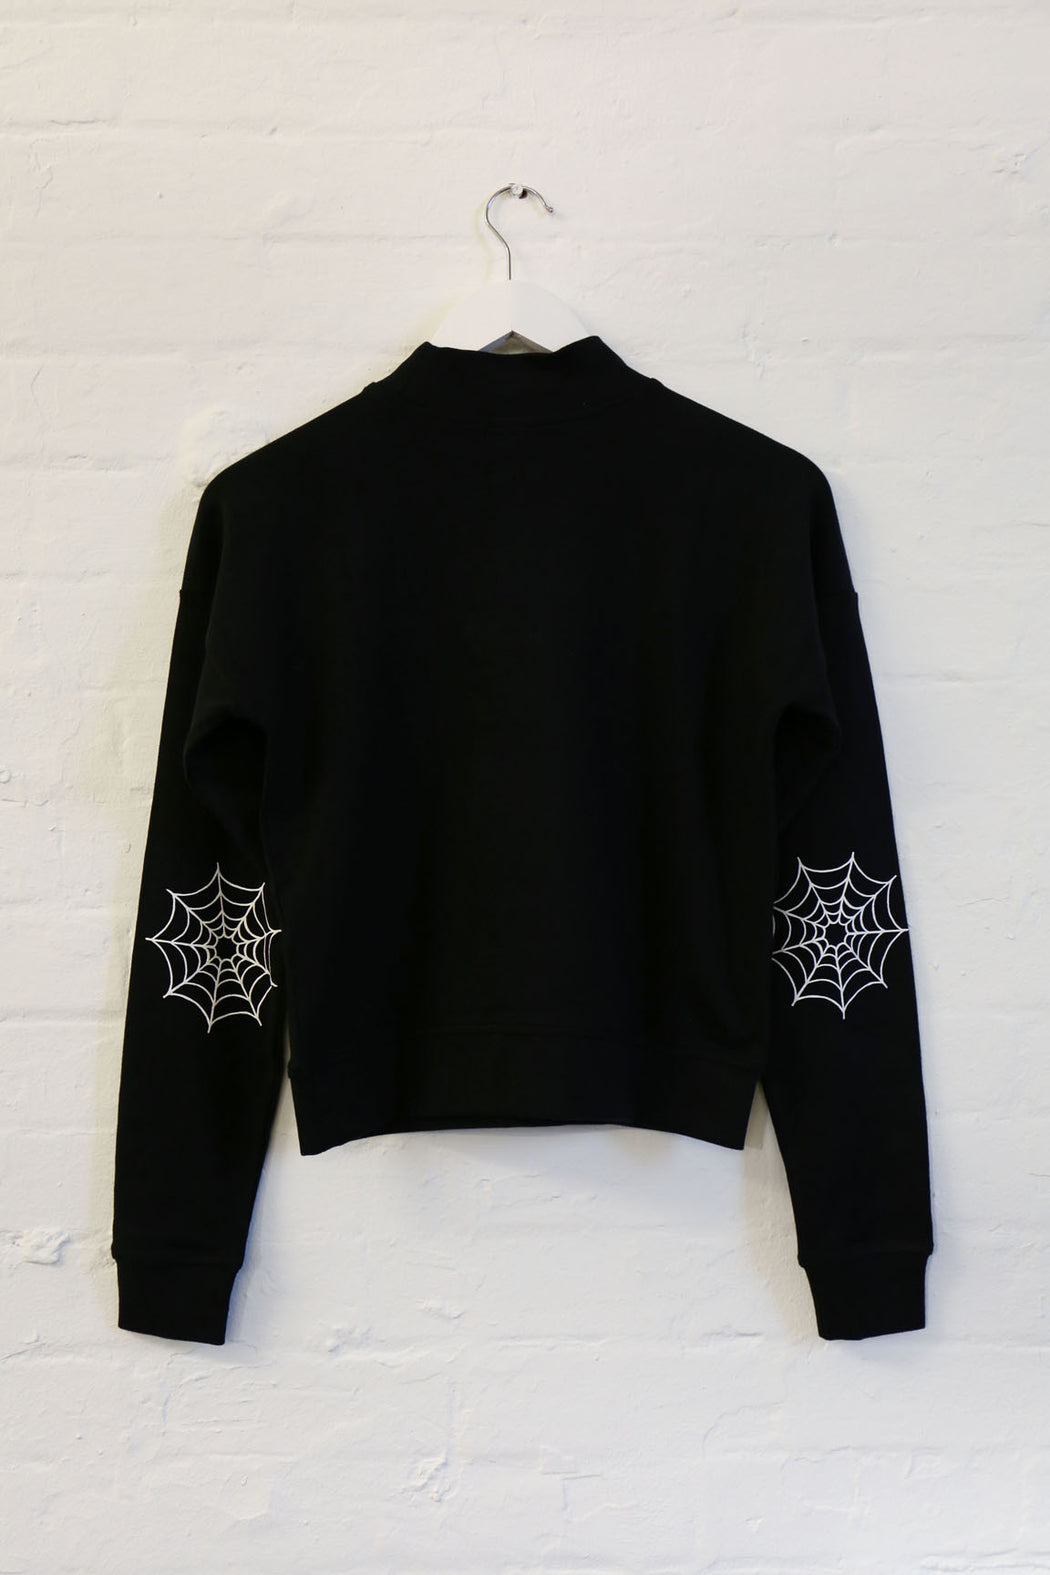 mary wyatt london black jumper with high neck and spider web screen printed on elbows alternative womens fashion